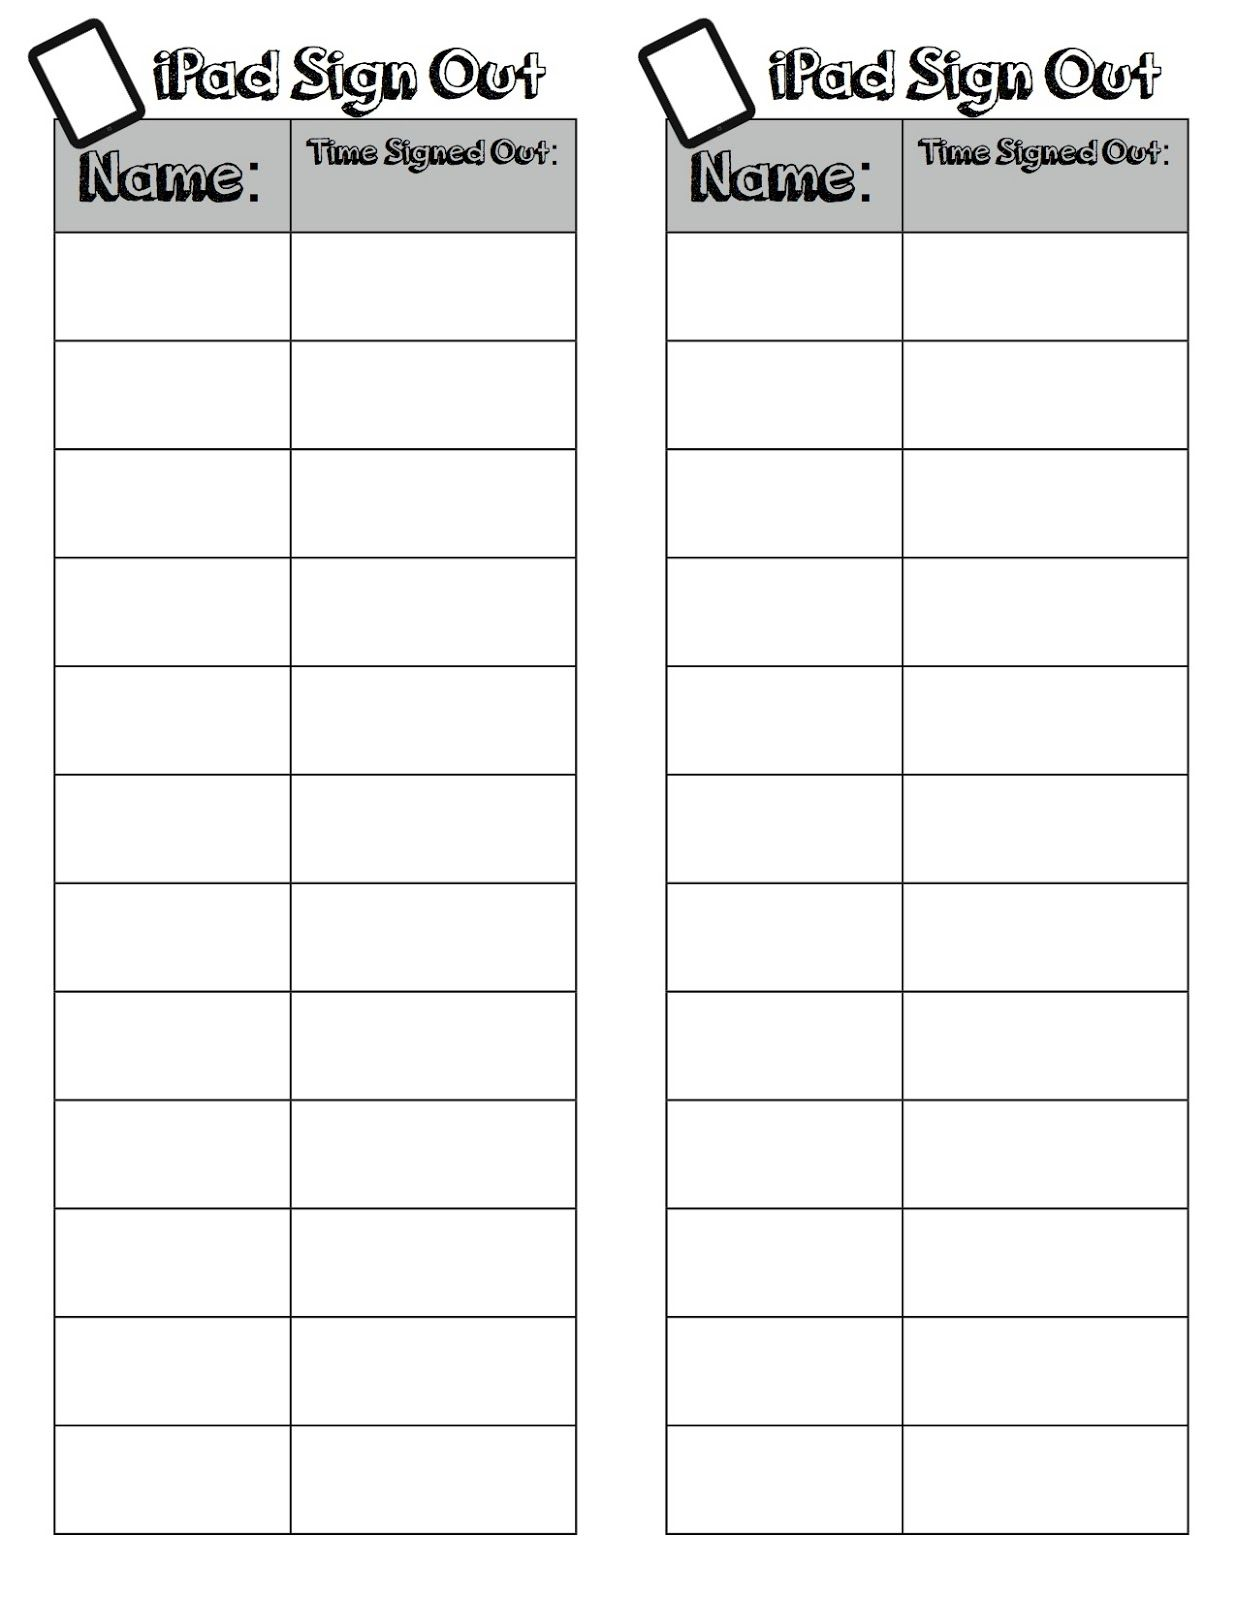 Ipad Sign Out Freebie  Ipad Computer Teacher And School Counselor